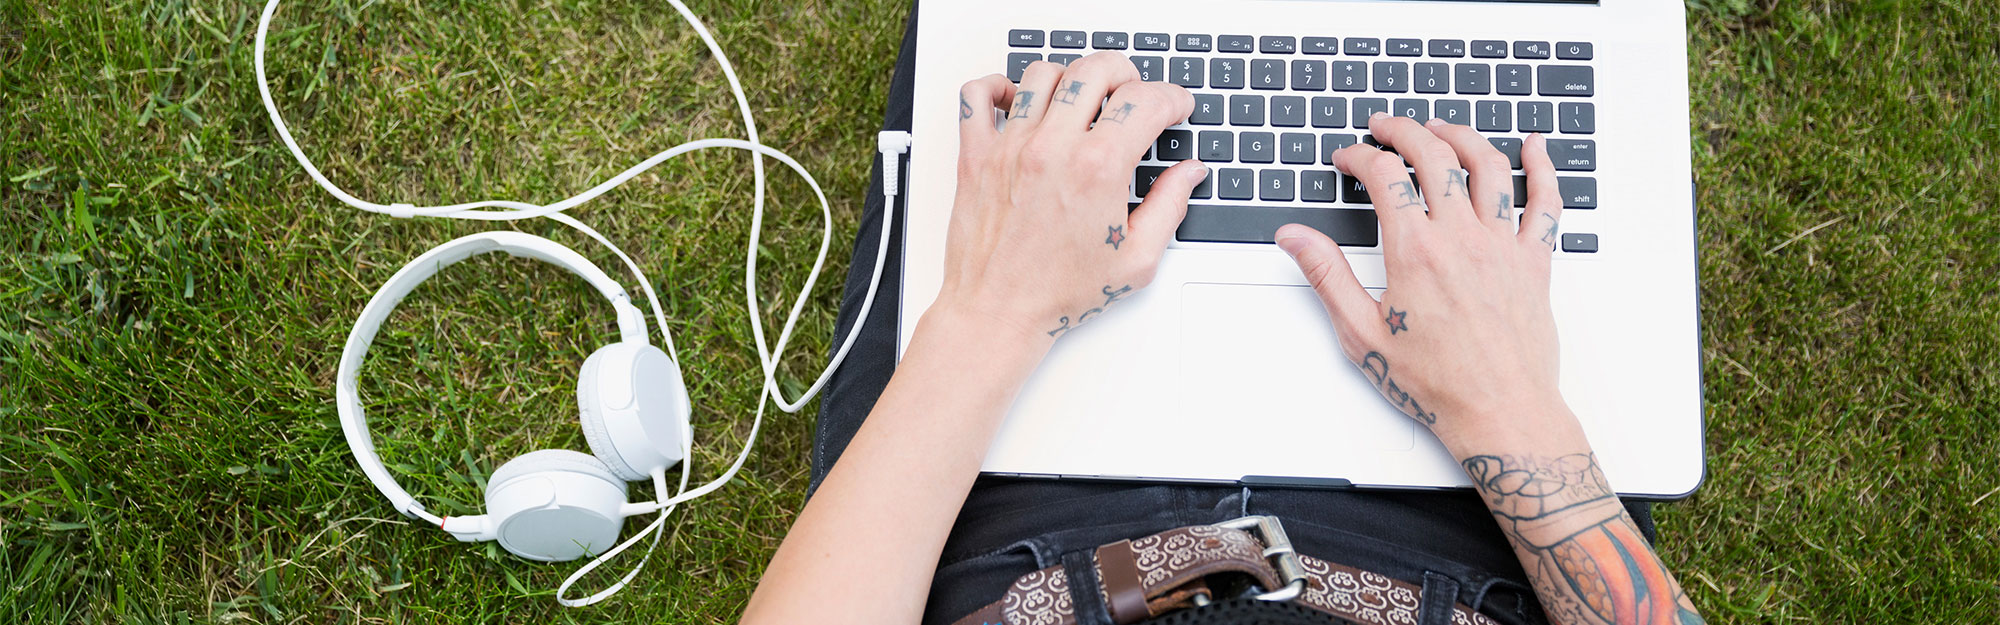 Young woman with tattoos using laptop in the grass.